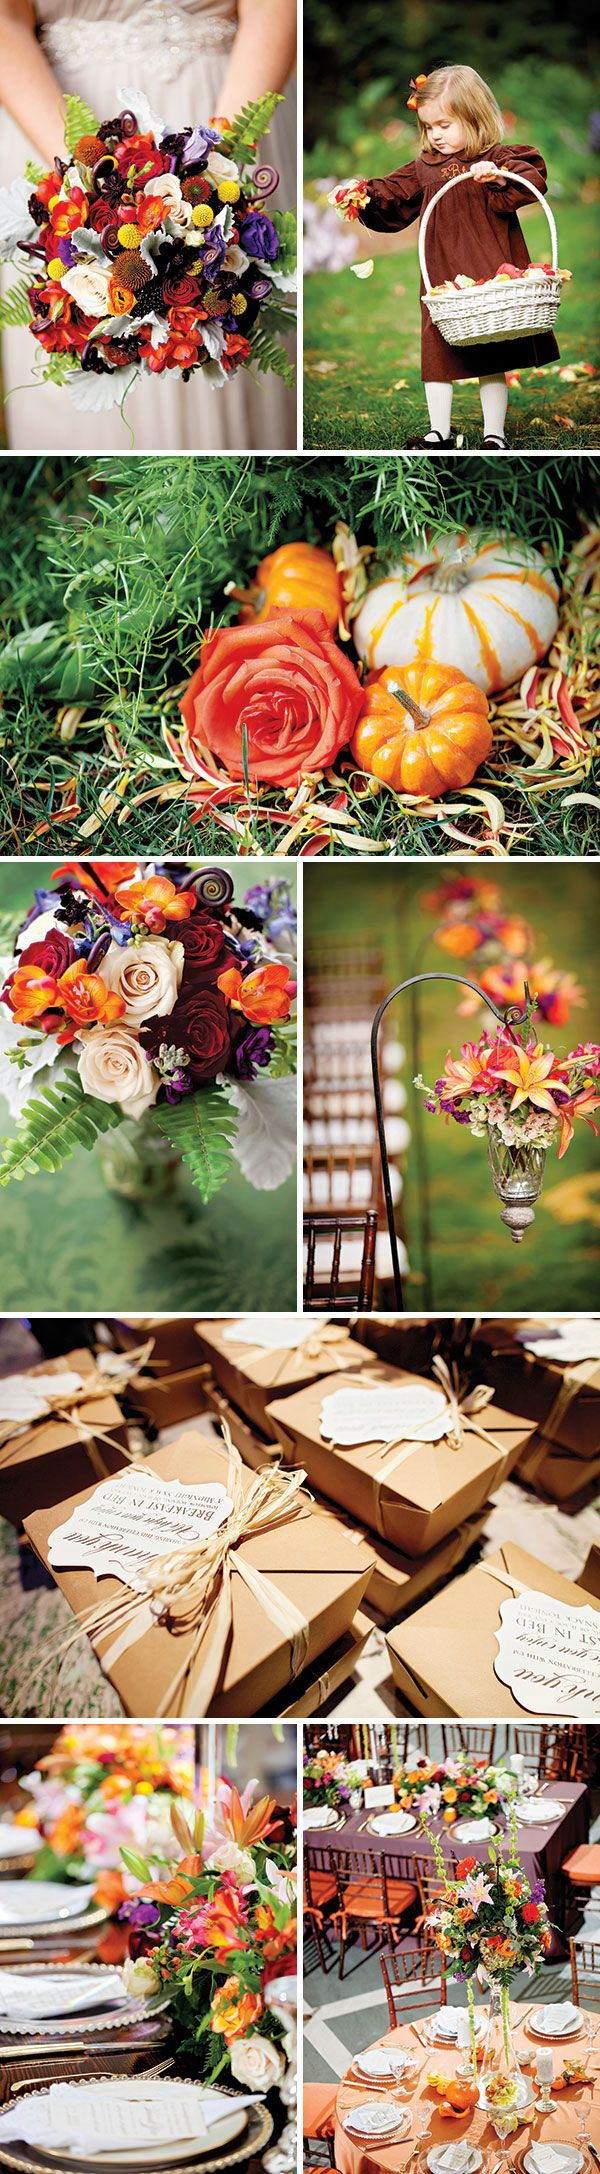 Fall Wedding Ideas - Wedding Season | Wedding Planning, Ideas & Etiquette | Bridal Guide Magazine